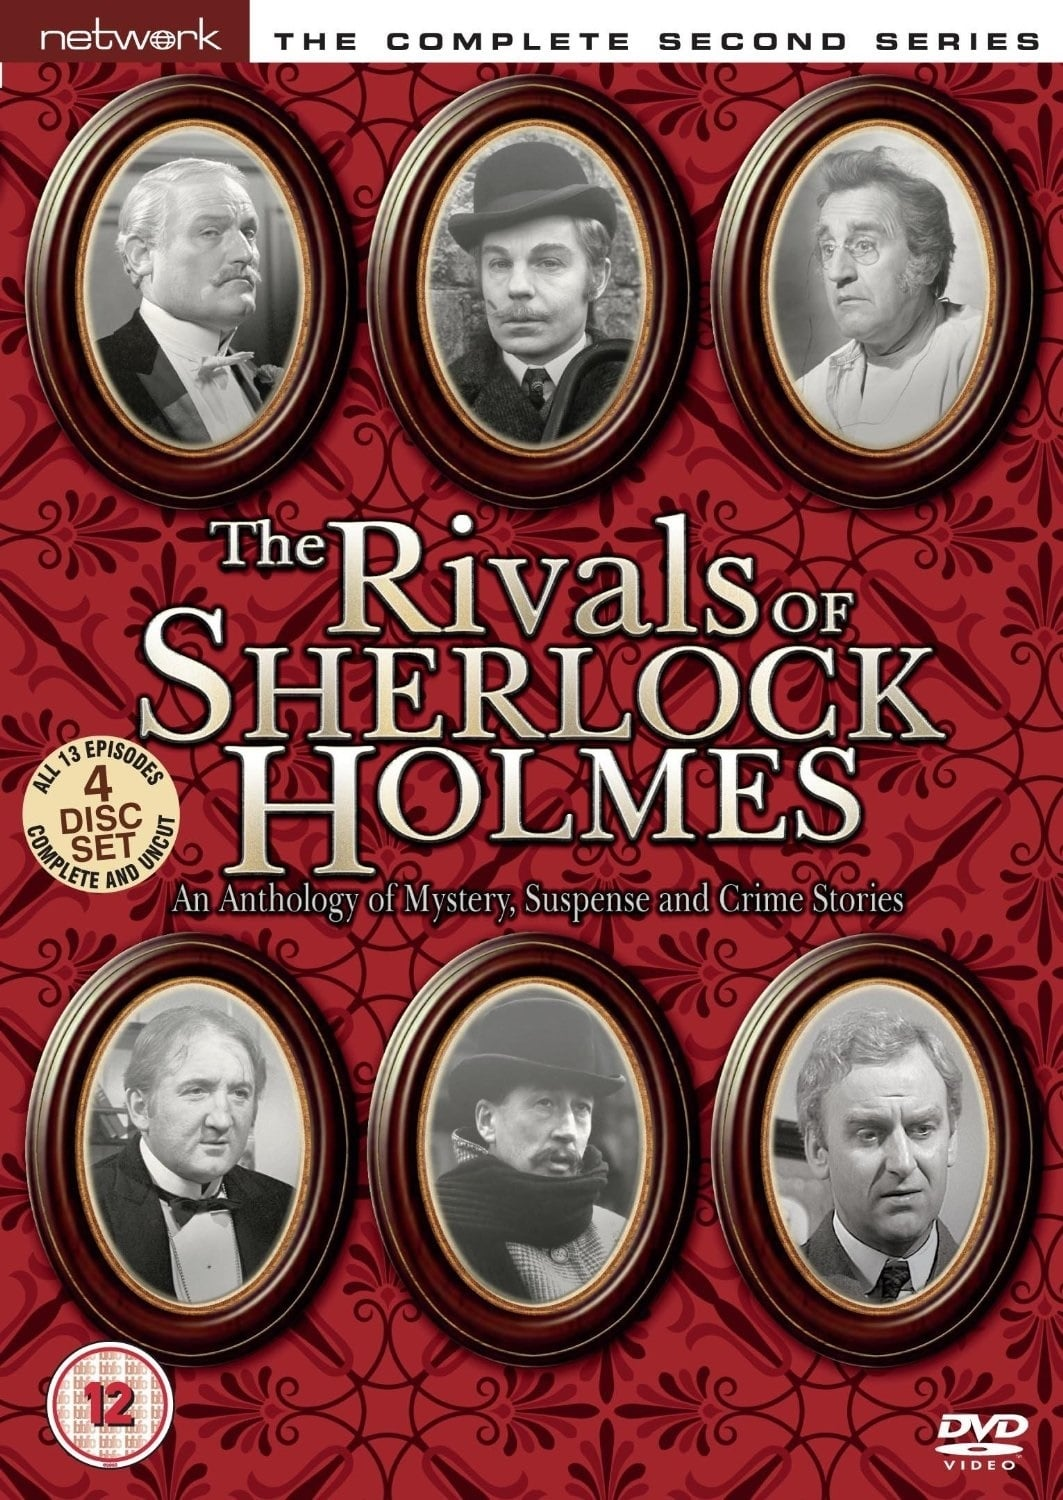 The Rivals of Sherlock Holmes (1971)